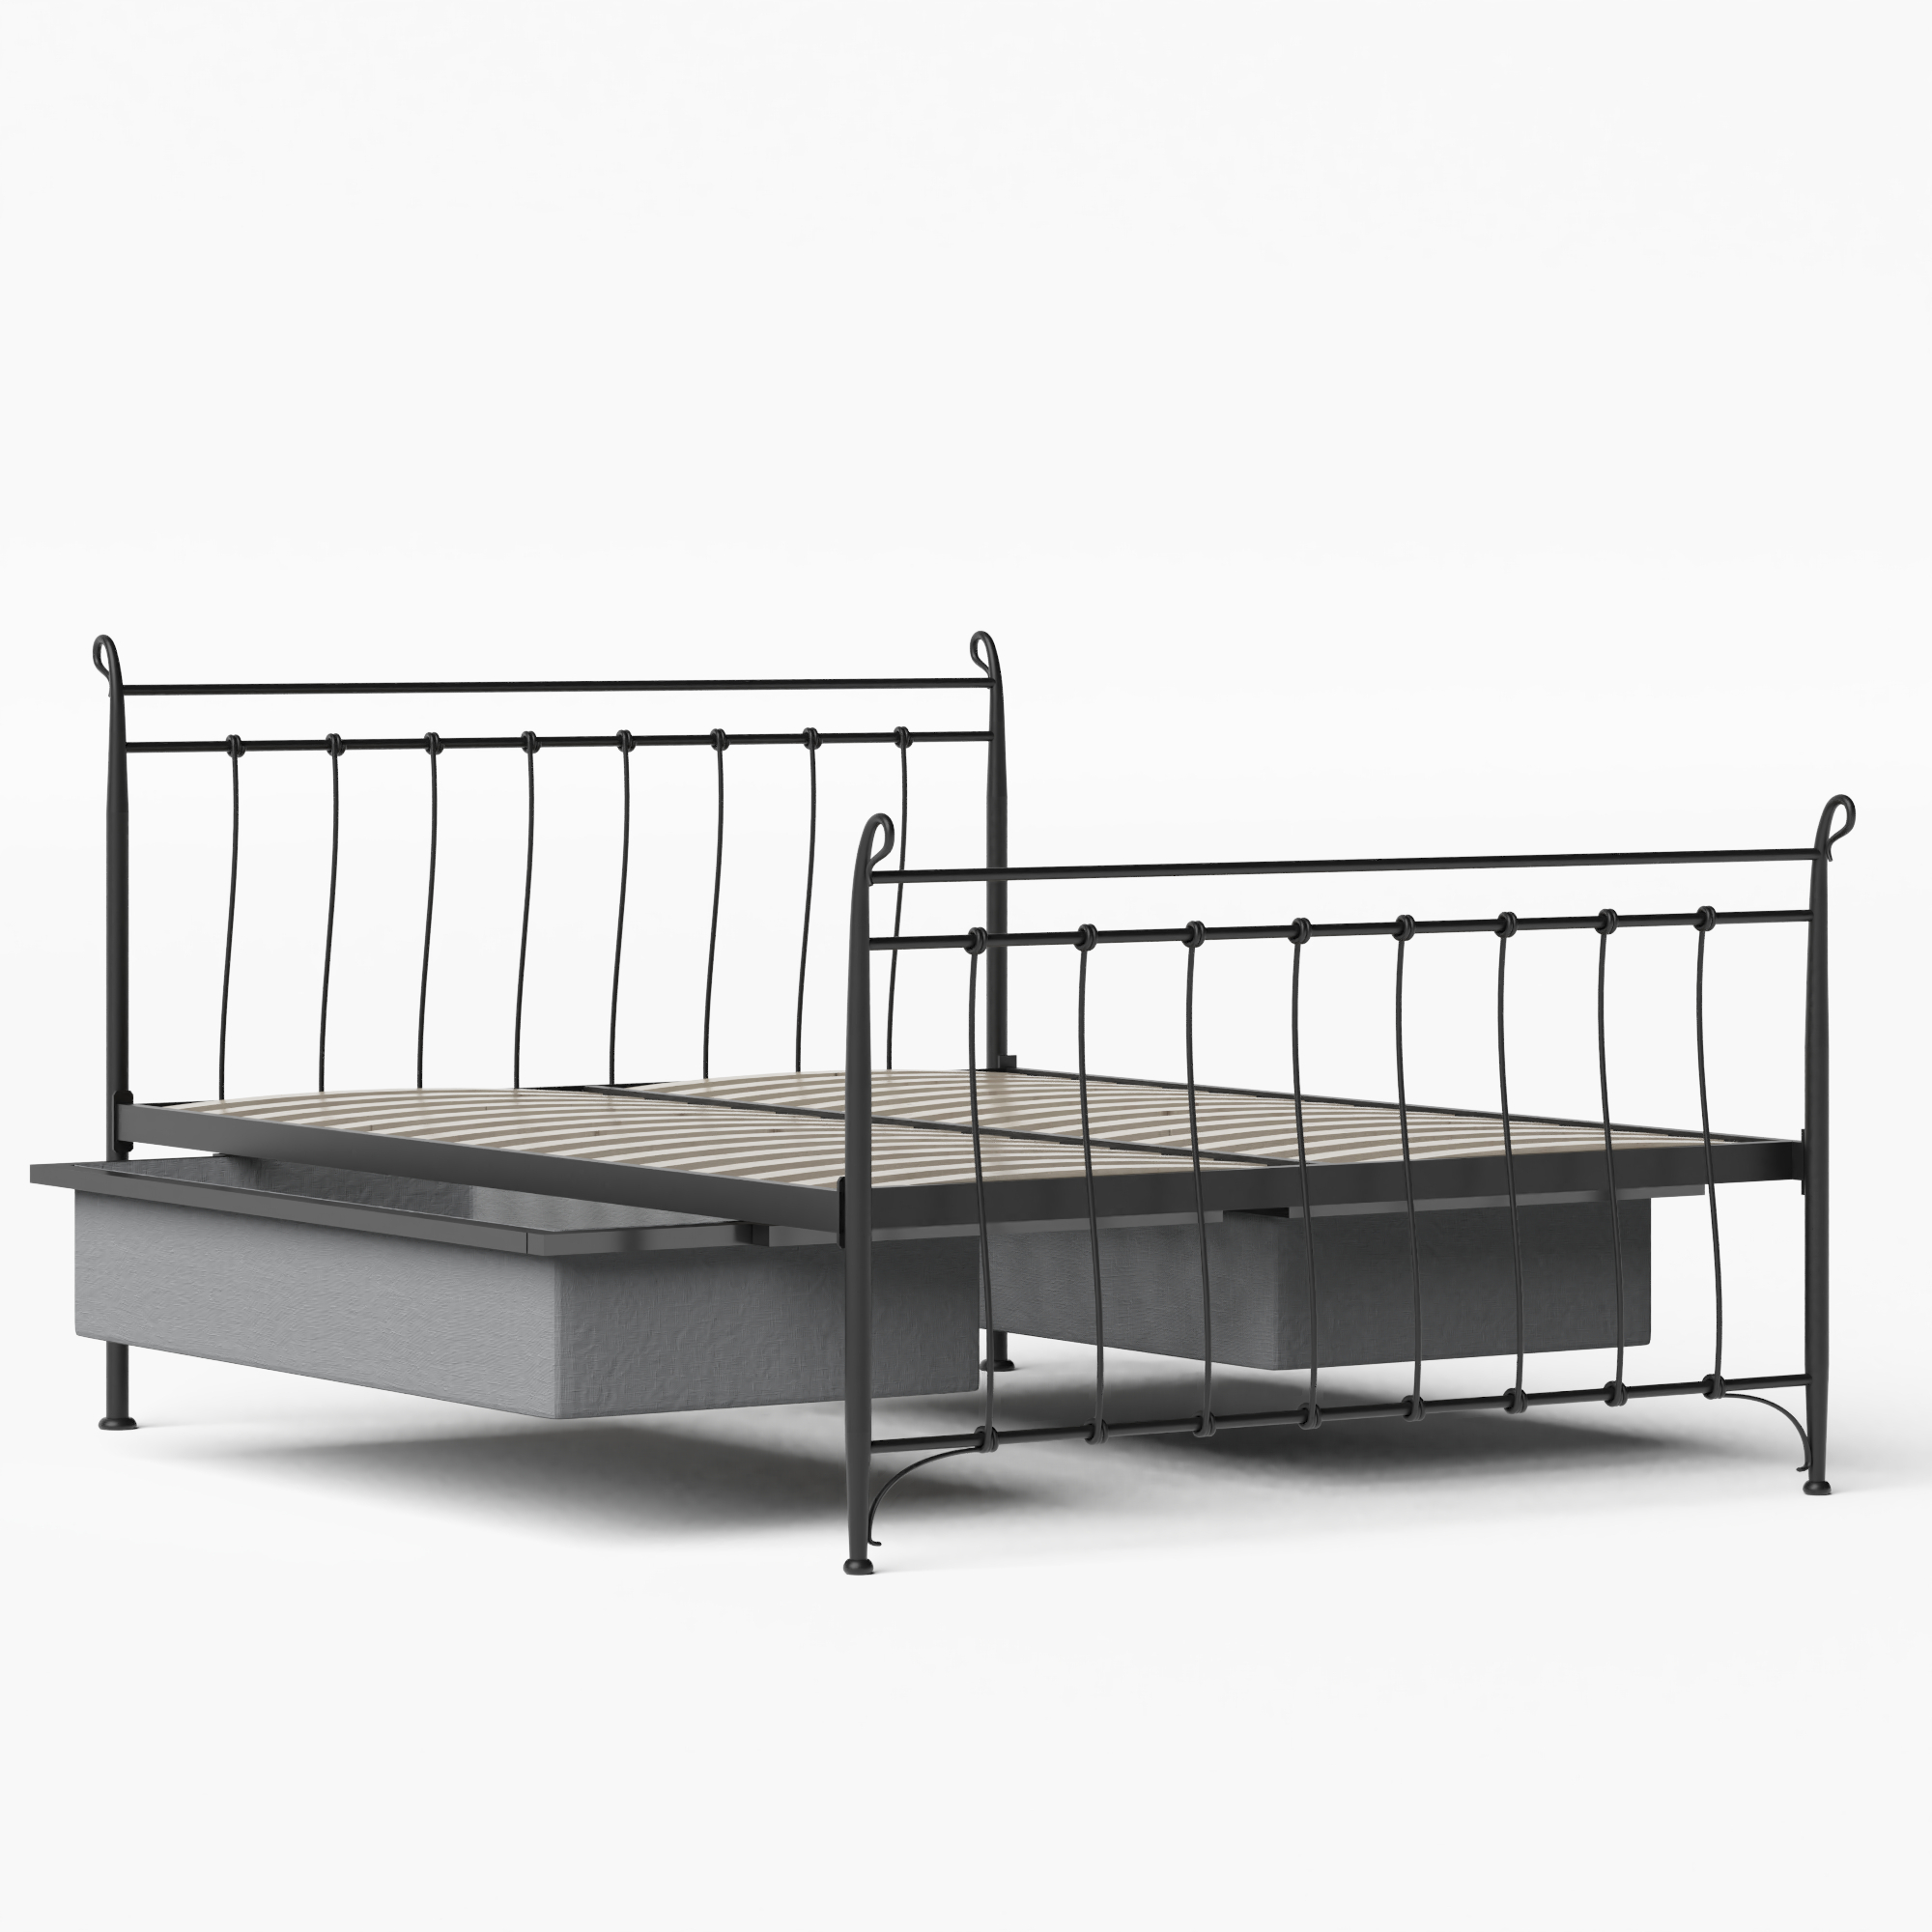 Tiffany iron/metal bed in black with drawers